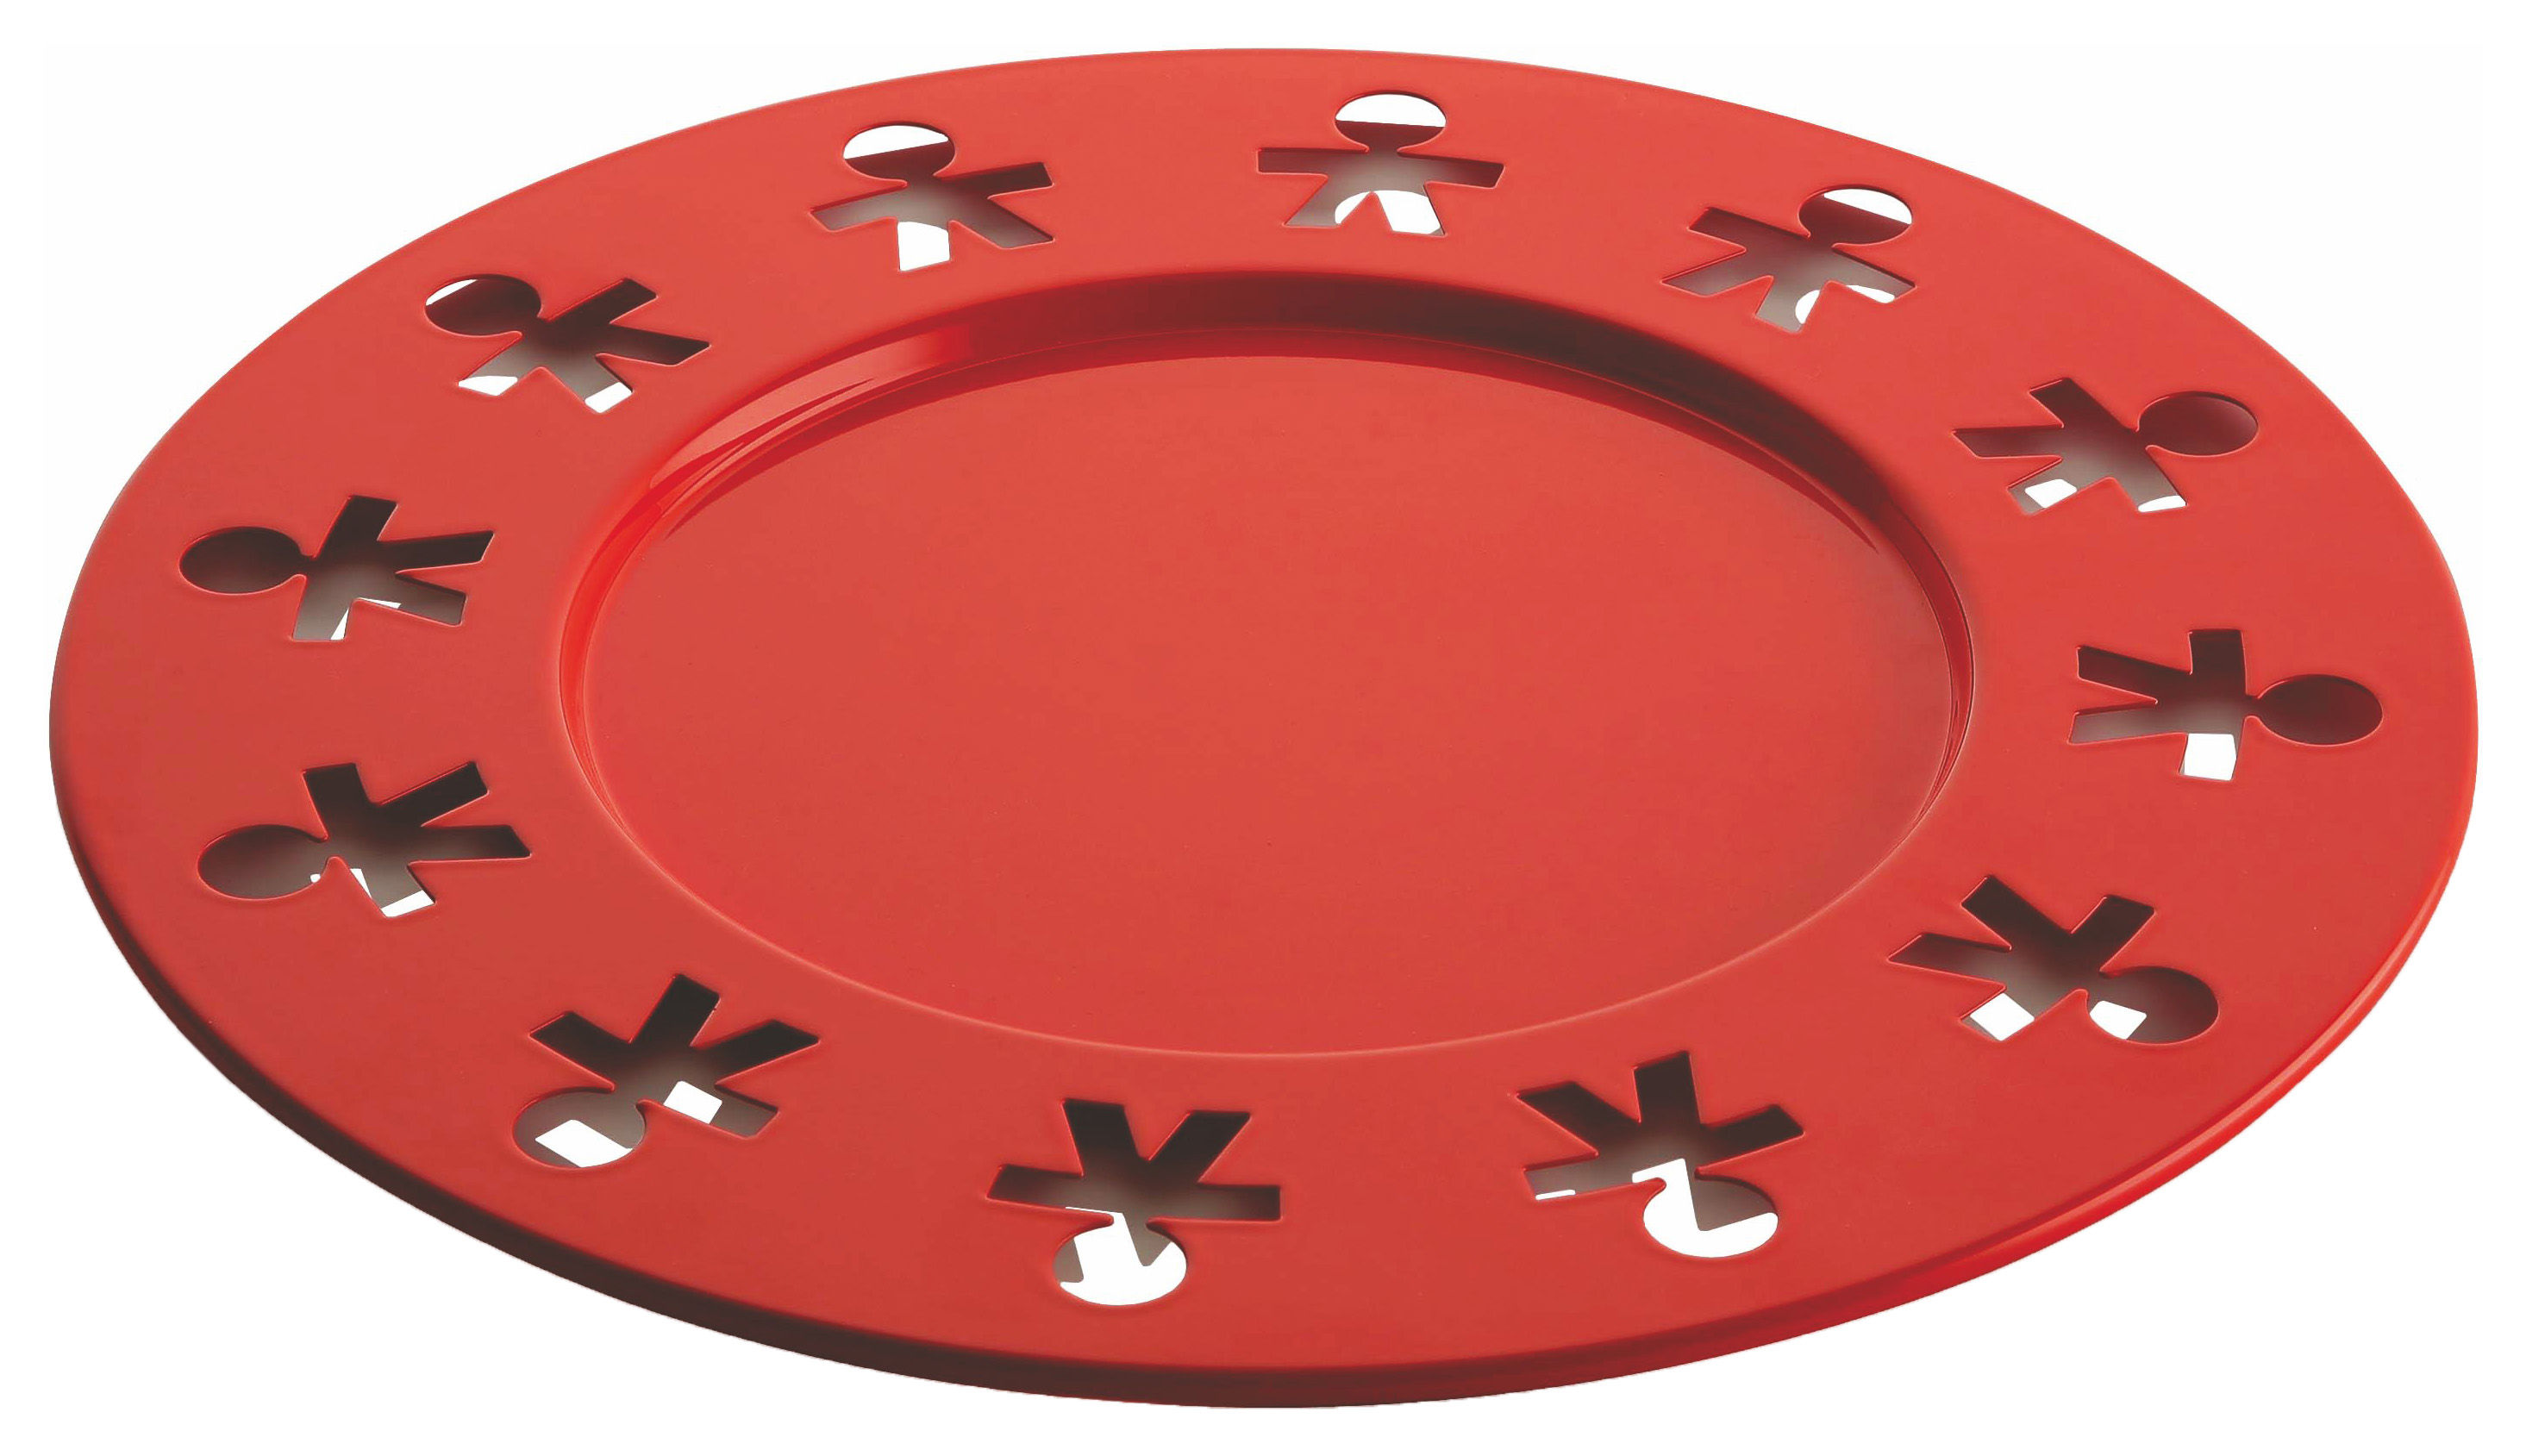 Tableware - Trays - Girotondo Poplike Placemat - Serving dish Ø 31,5 cm by A di Alessi - Pop orange - Stainless steel